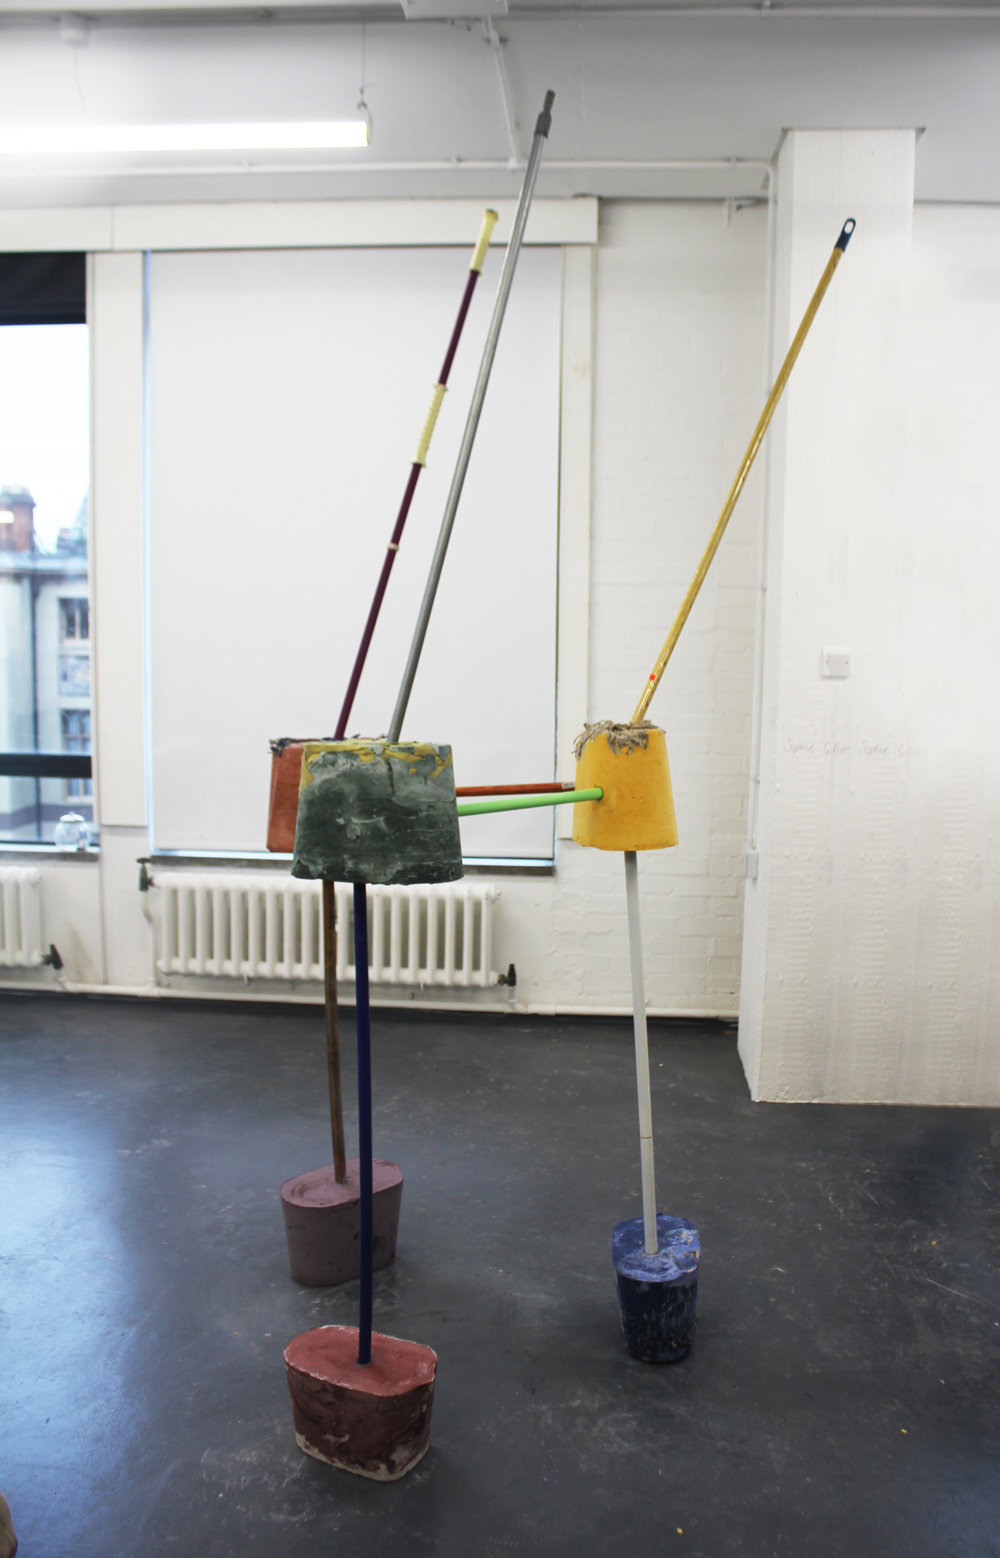 Threetoosolid, Mops, Plaster, Pigment, Installed At Royal College Of Art Works In Progress Show, London, January 2019